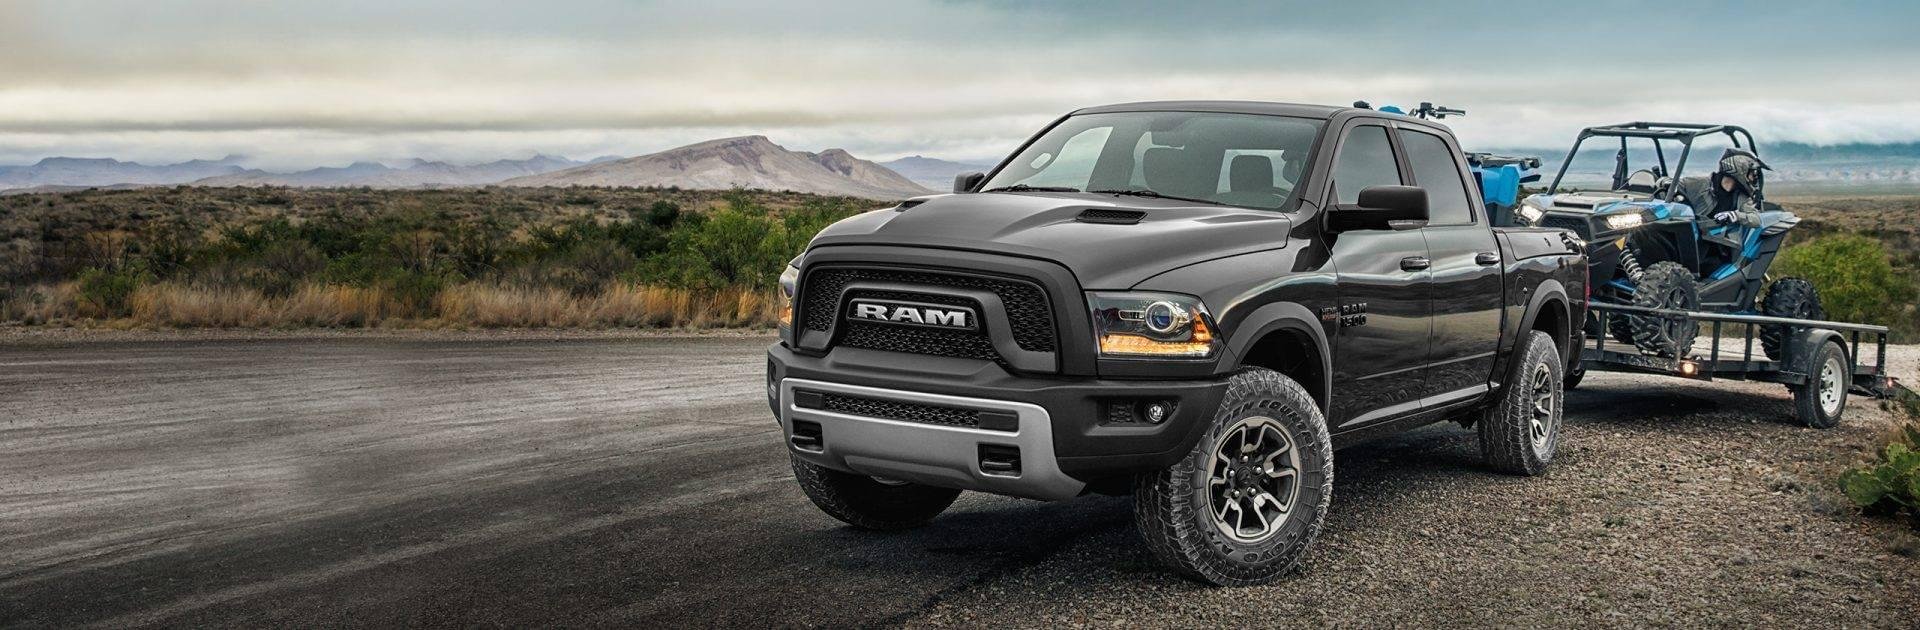 Ram Towing Capacity >> 5 Things To Know About Your Ram S Towing Capacity Best Cdjr